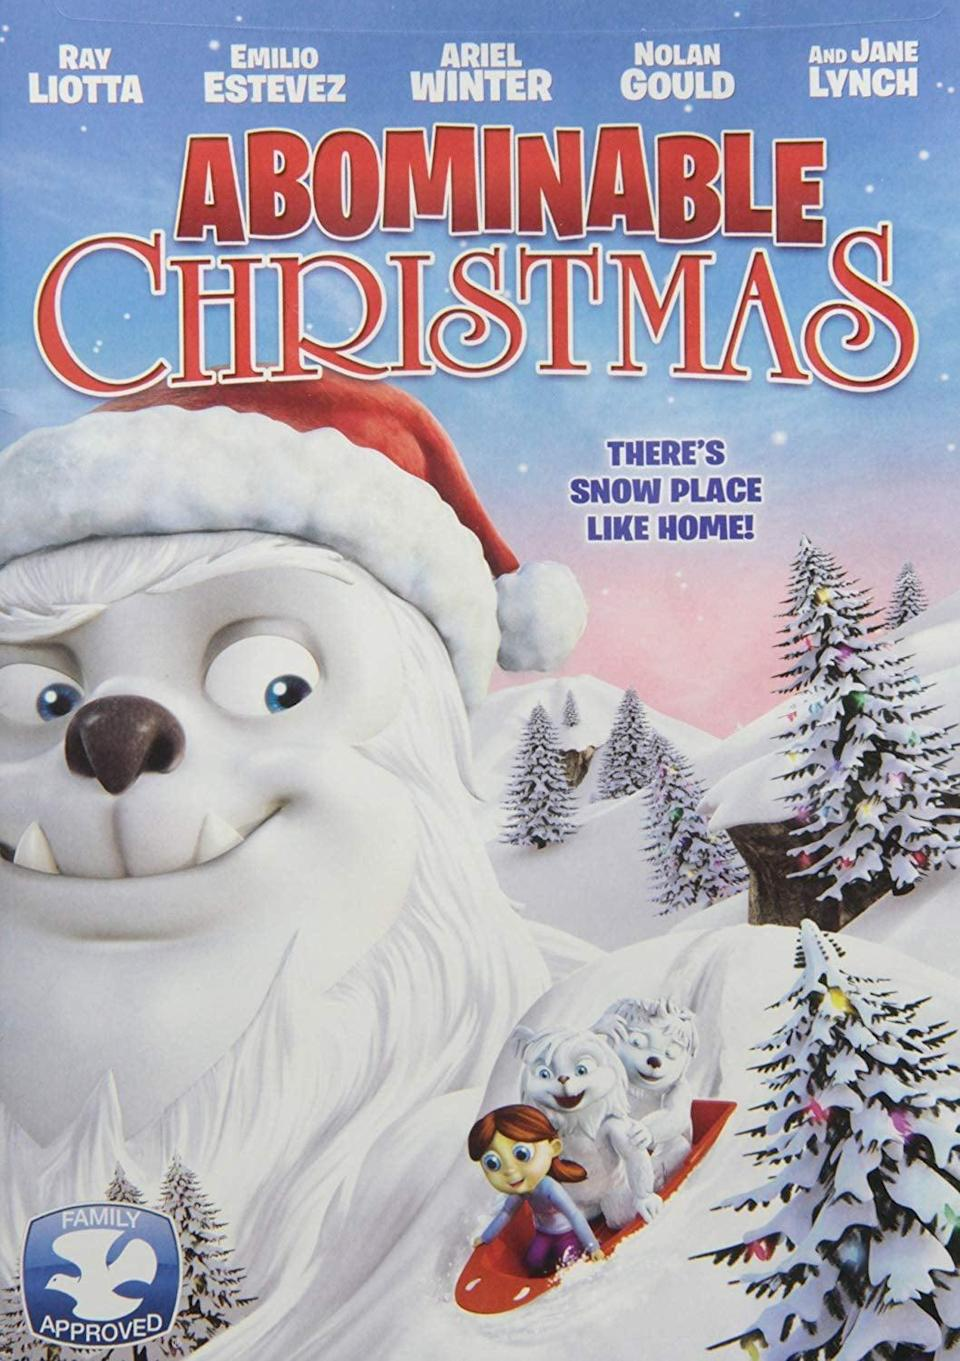 """<p><strong>Netflix description:</strong> """"Two small abominable snowmen flee their mountain to escape a scientist who's trying to capture them and end up spending Christmas with a human family.""""</p> <p><strong>Ages it's appropriate for:</strong> 3 and up</p> <p><strong>Watch it here:</strong> <a href=""""https://www.netflix.com/title/70307570"""" class=""""link rapid-noclick-resp"""" rel=""""nofollow noopener"""" target=""""_blank"""" data-ylk=""""slk:Abominable Christmas""""><strong>Abominable Christmas</strong></a></p>"""